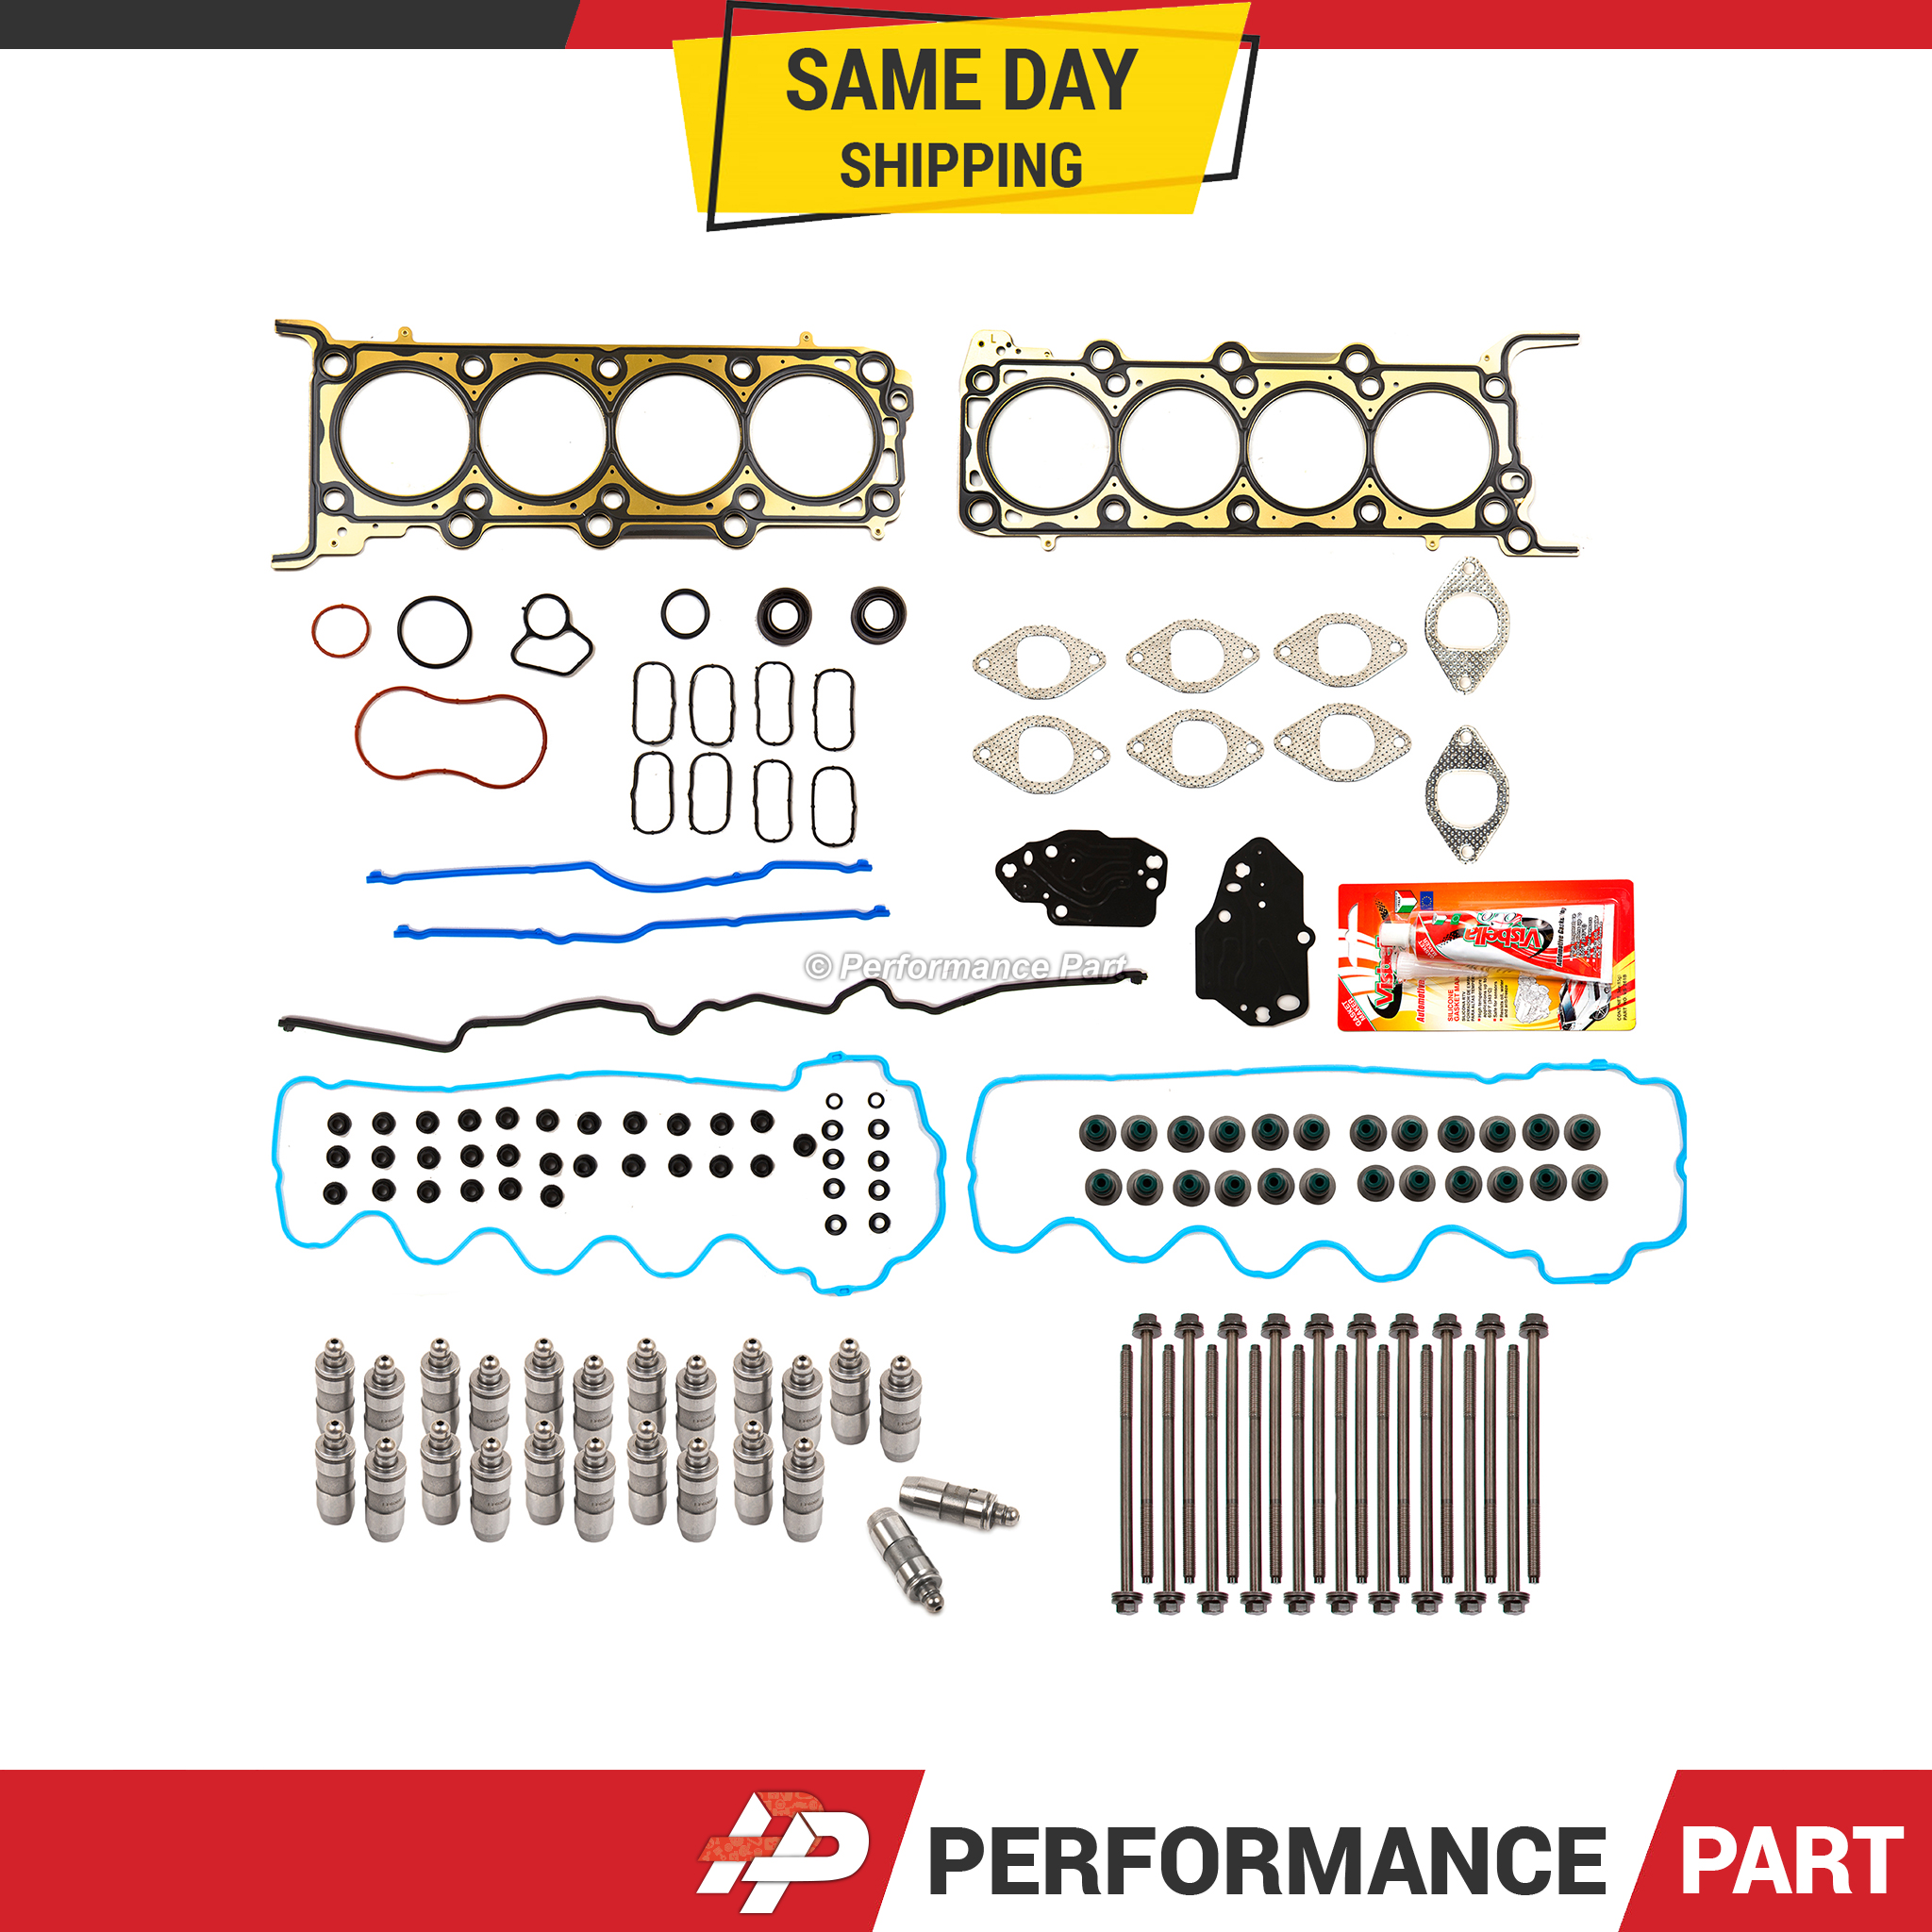 Head Gasket Set Bolts Lifters Fits 05-06 Ford Mustang 4.6L SOHC 24V VIN H